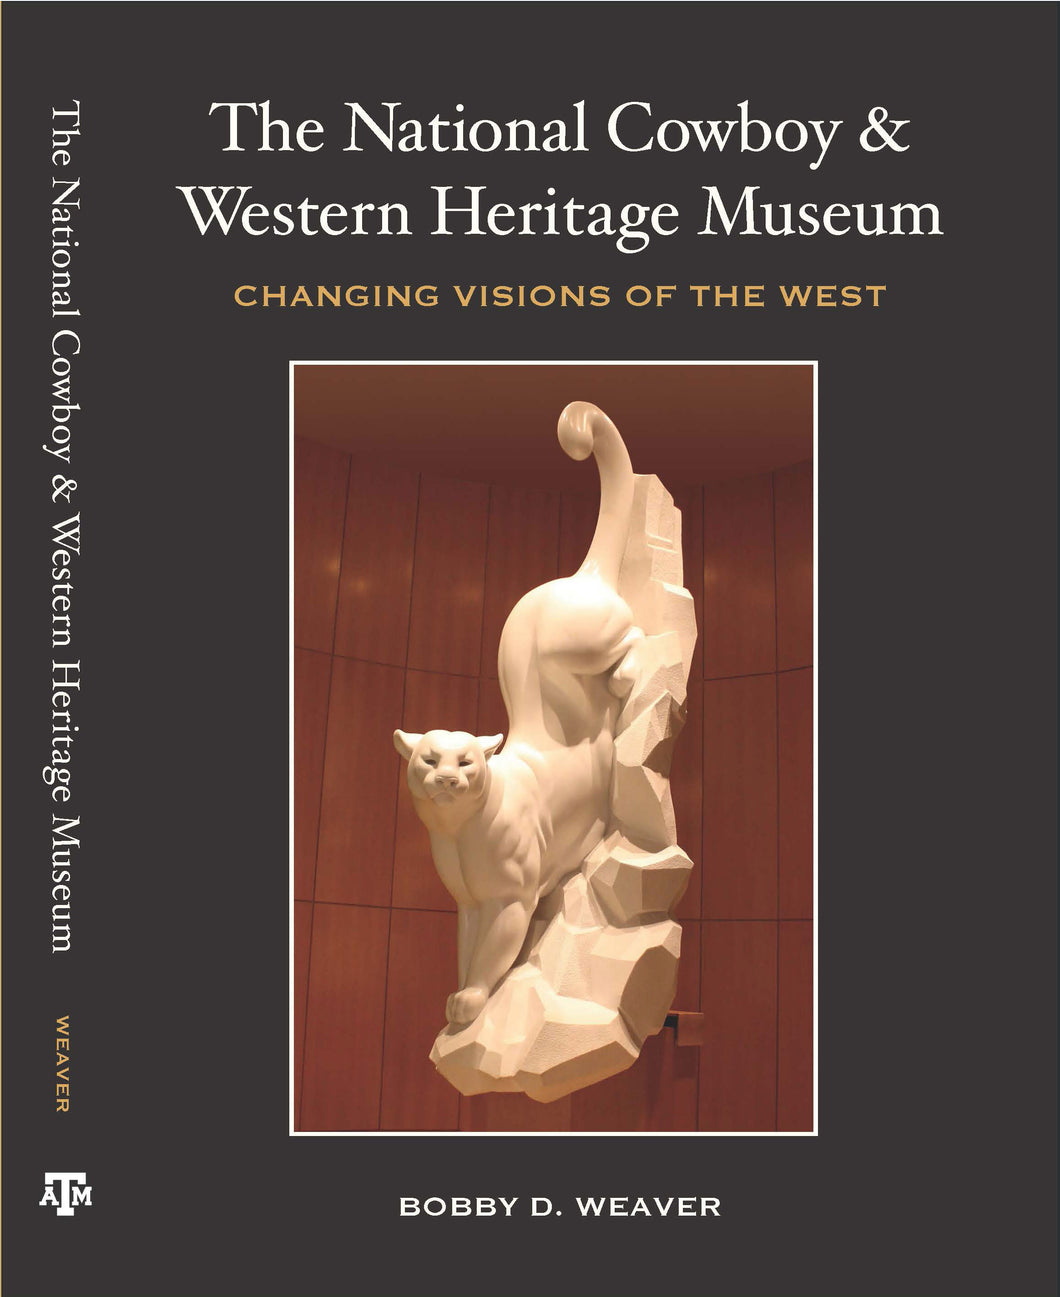 The National Cowboy & Western Heritage Museum: Changing Visions of the West